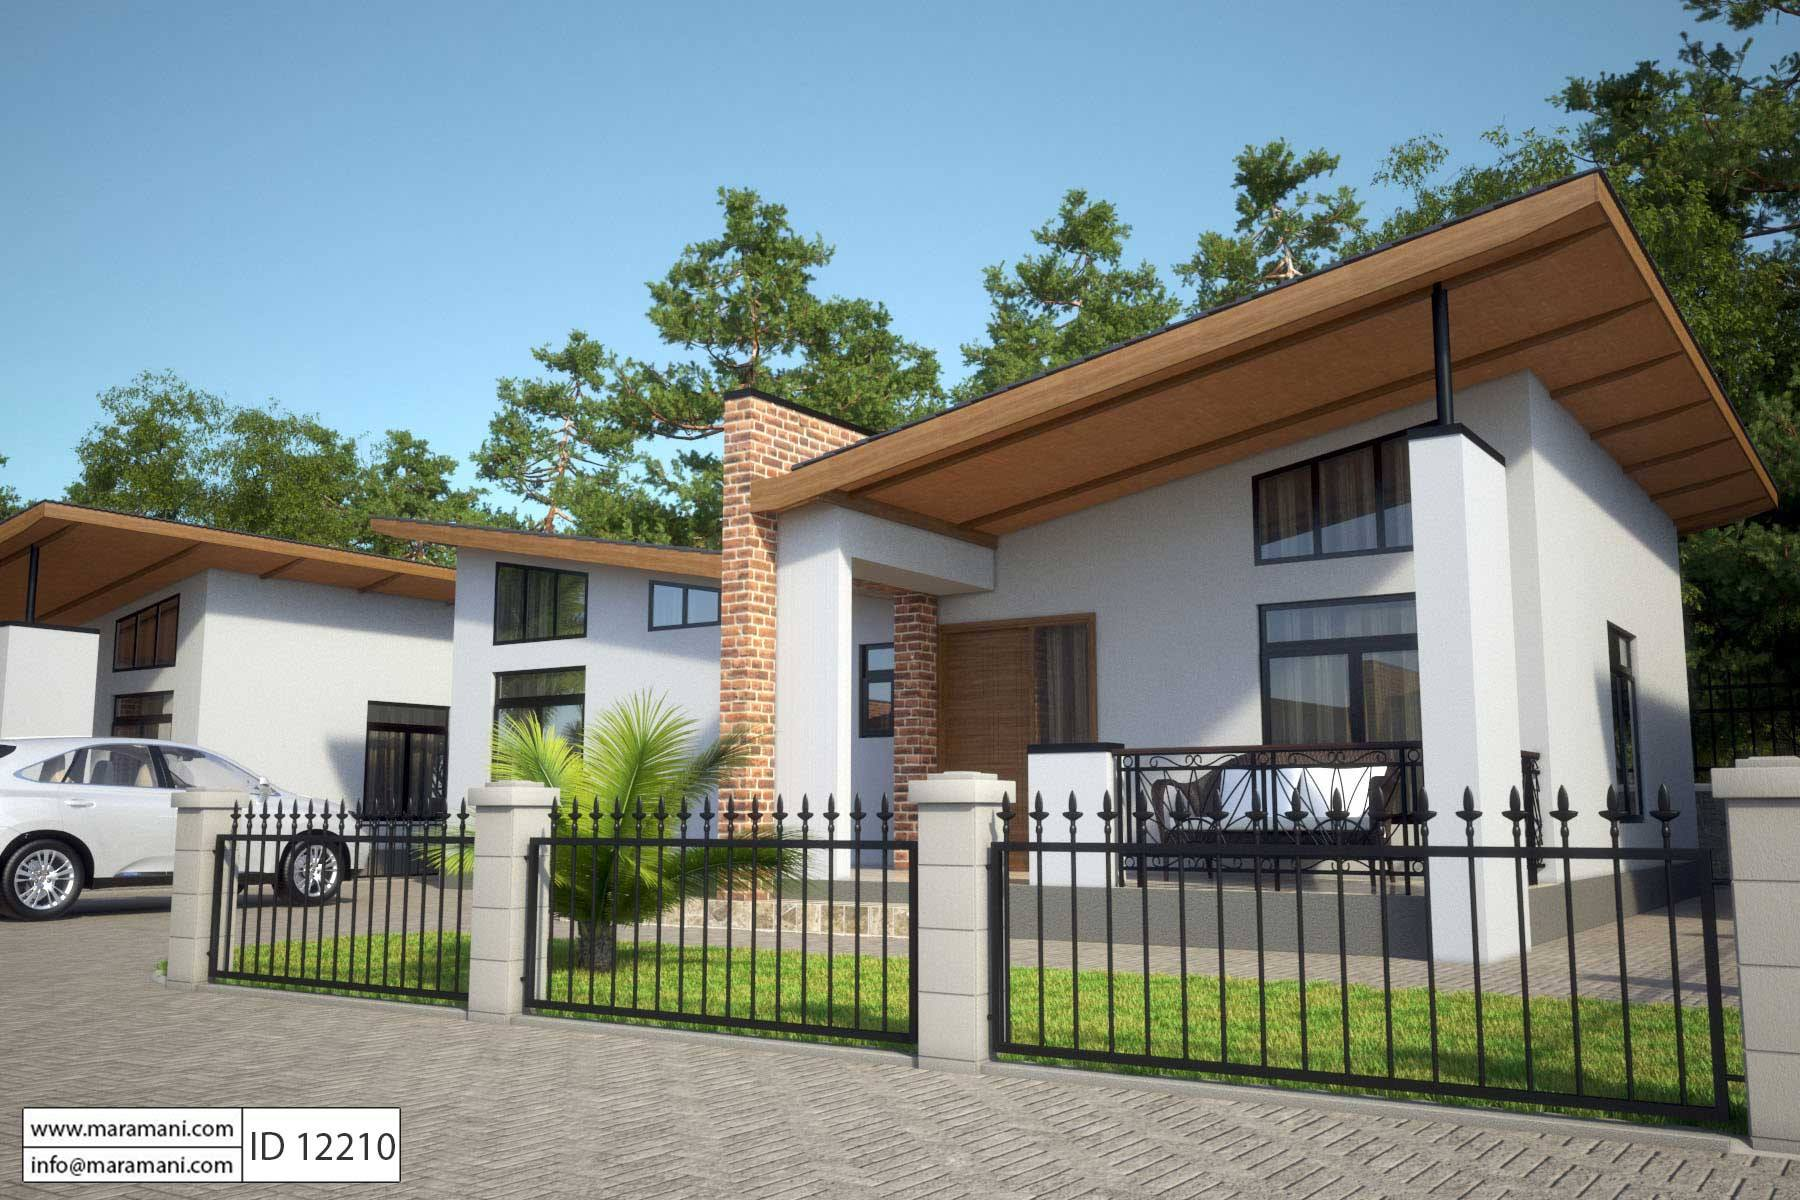 Two Bedroom House Id 12210 Maramani Com